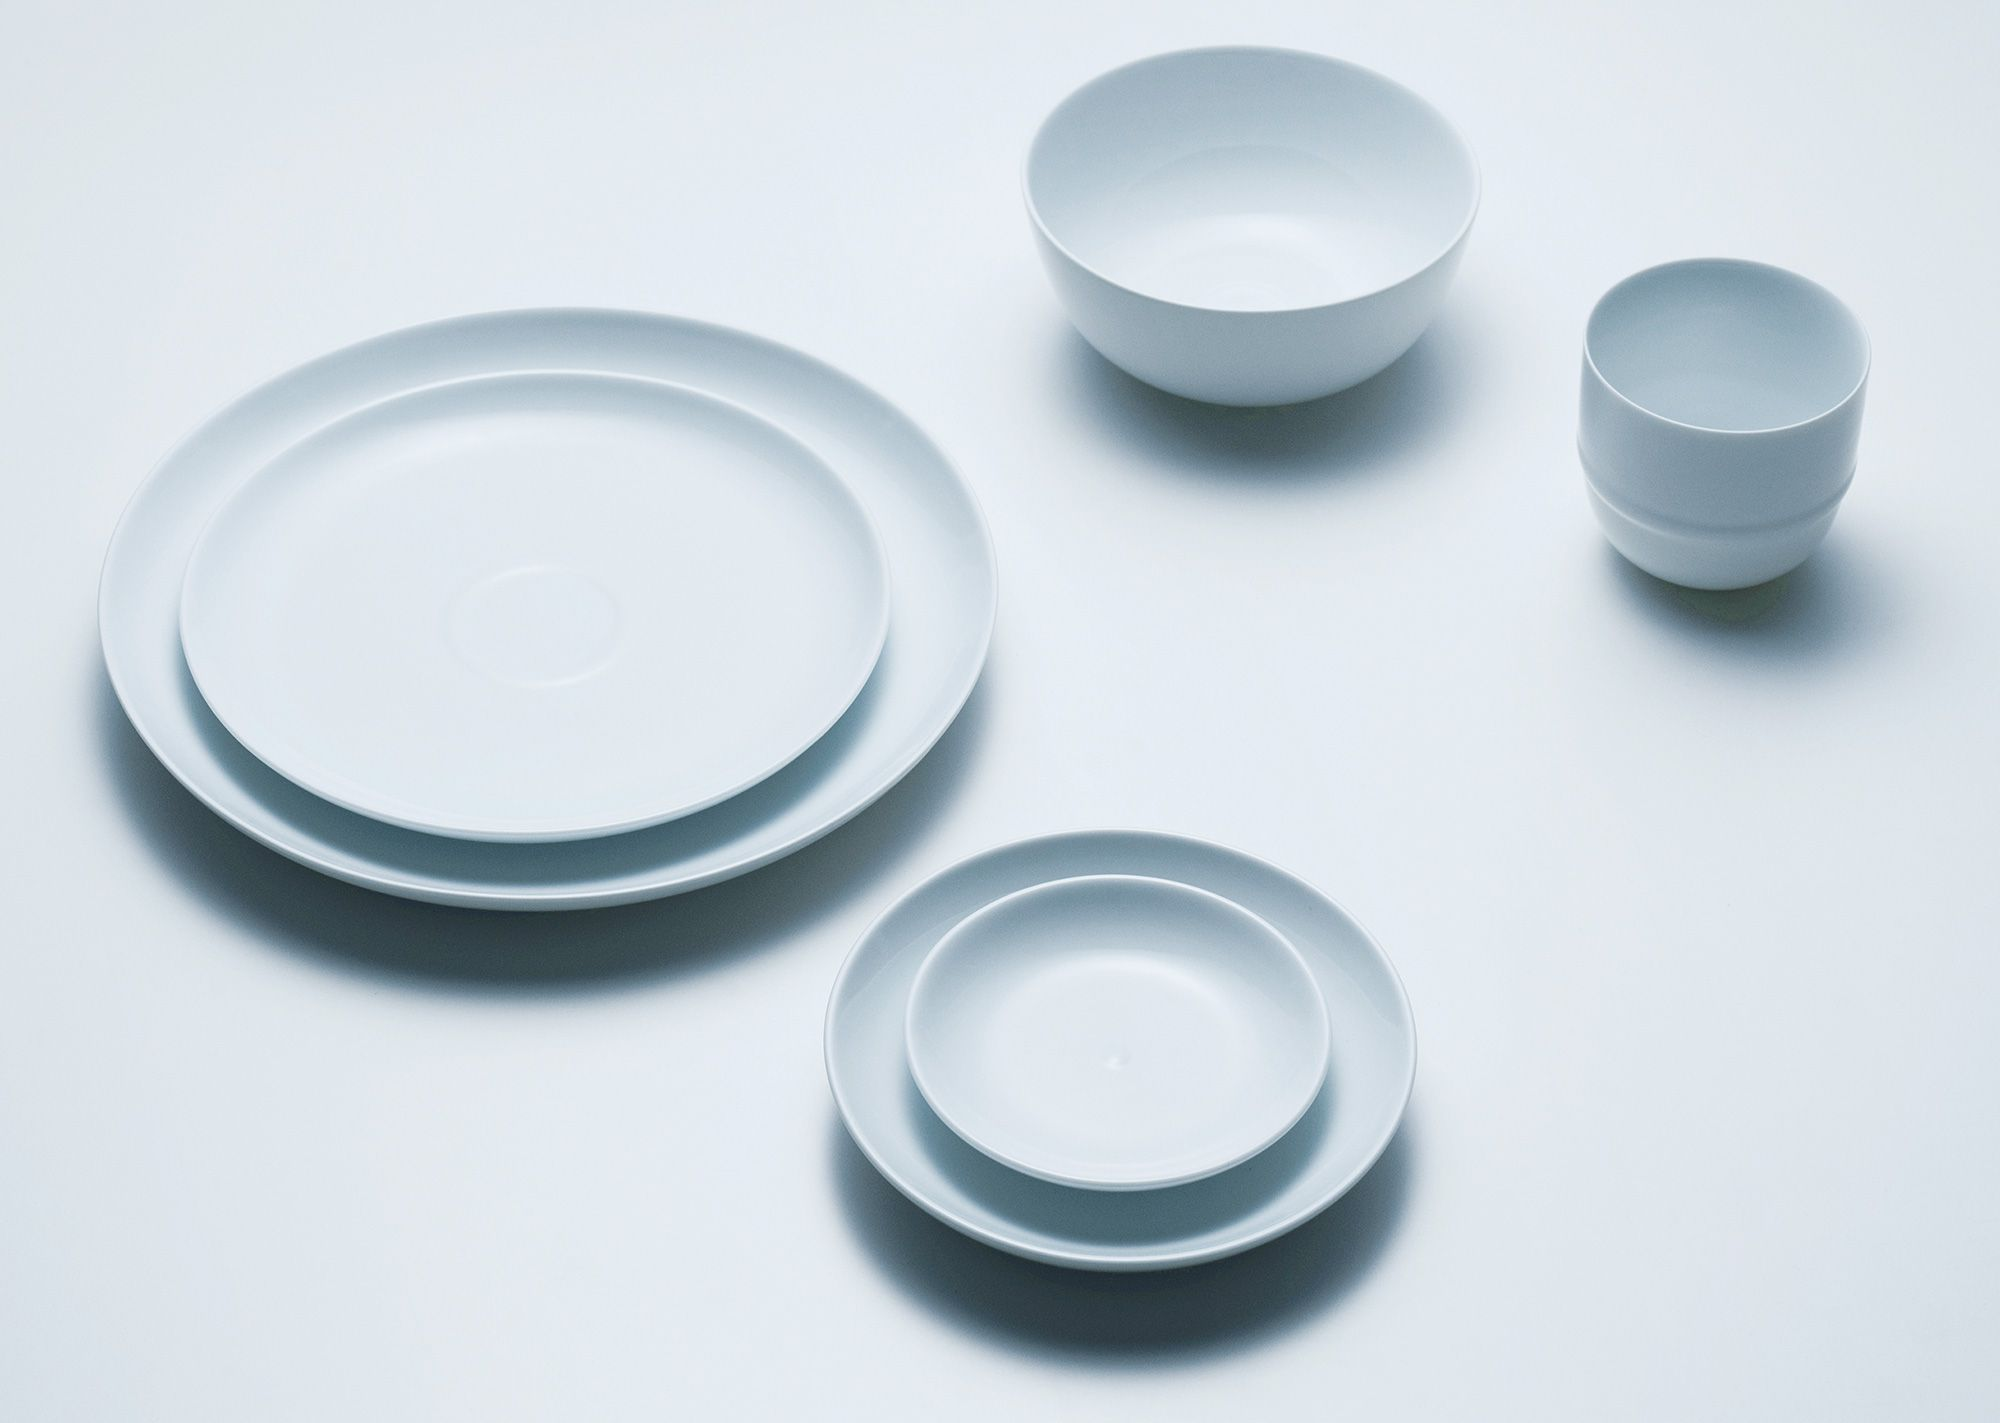 Plates (3 sizes starting from 145mm): \1,836, Cup: \1,404